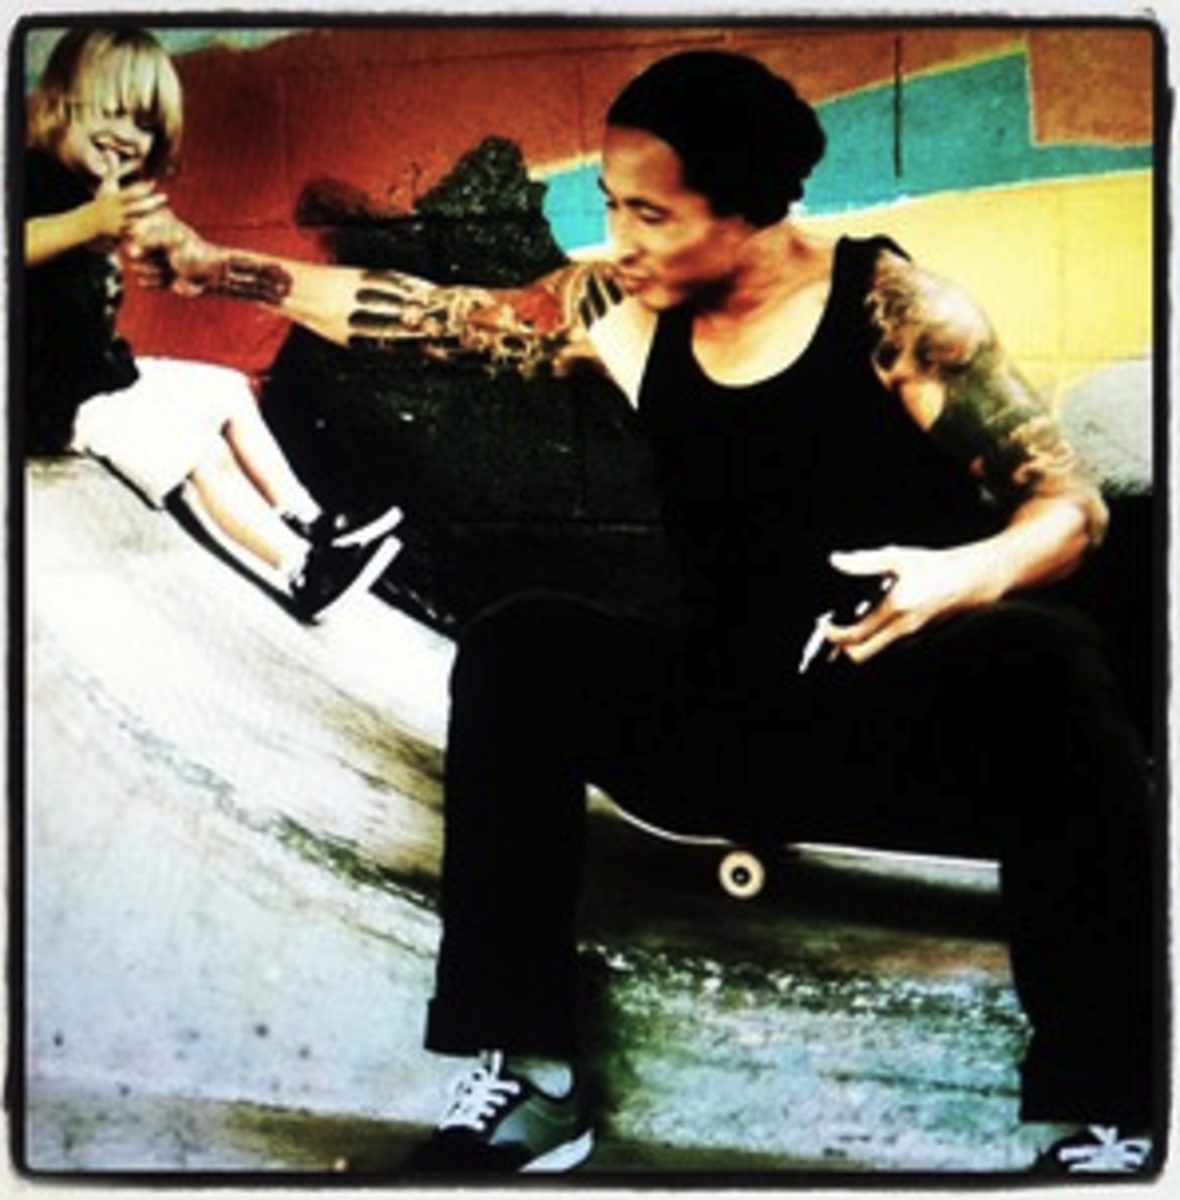 Professional Skateboarder, Daewon Song